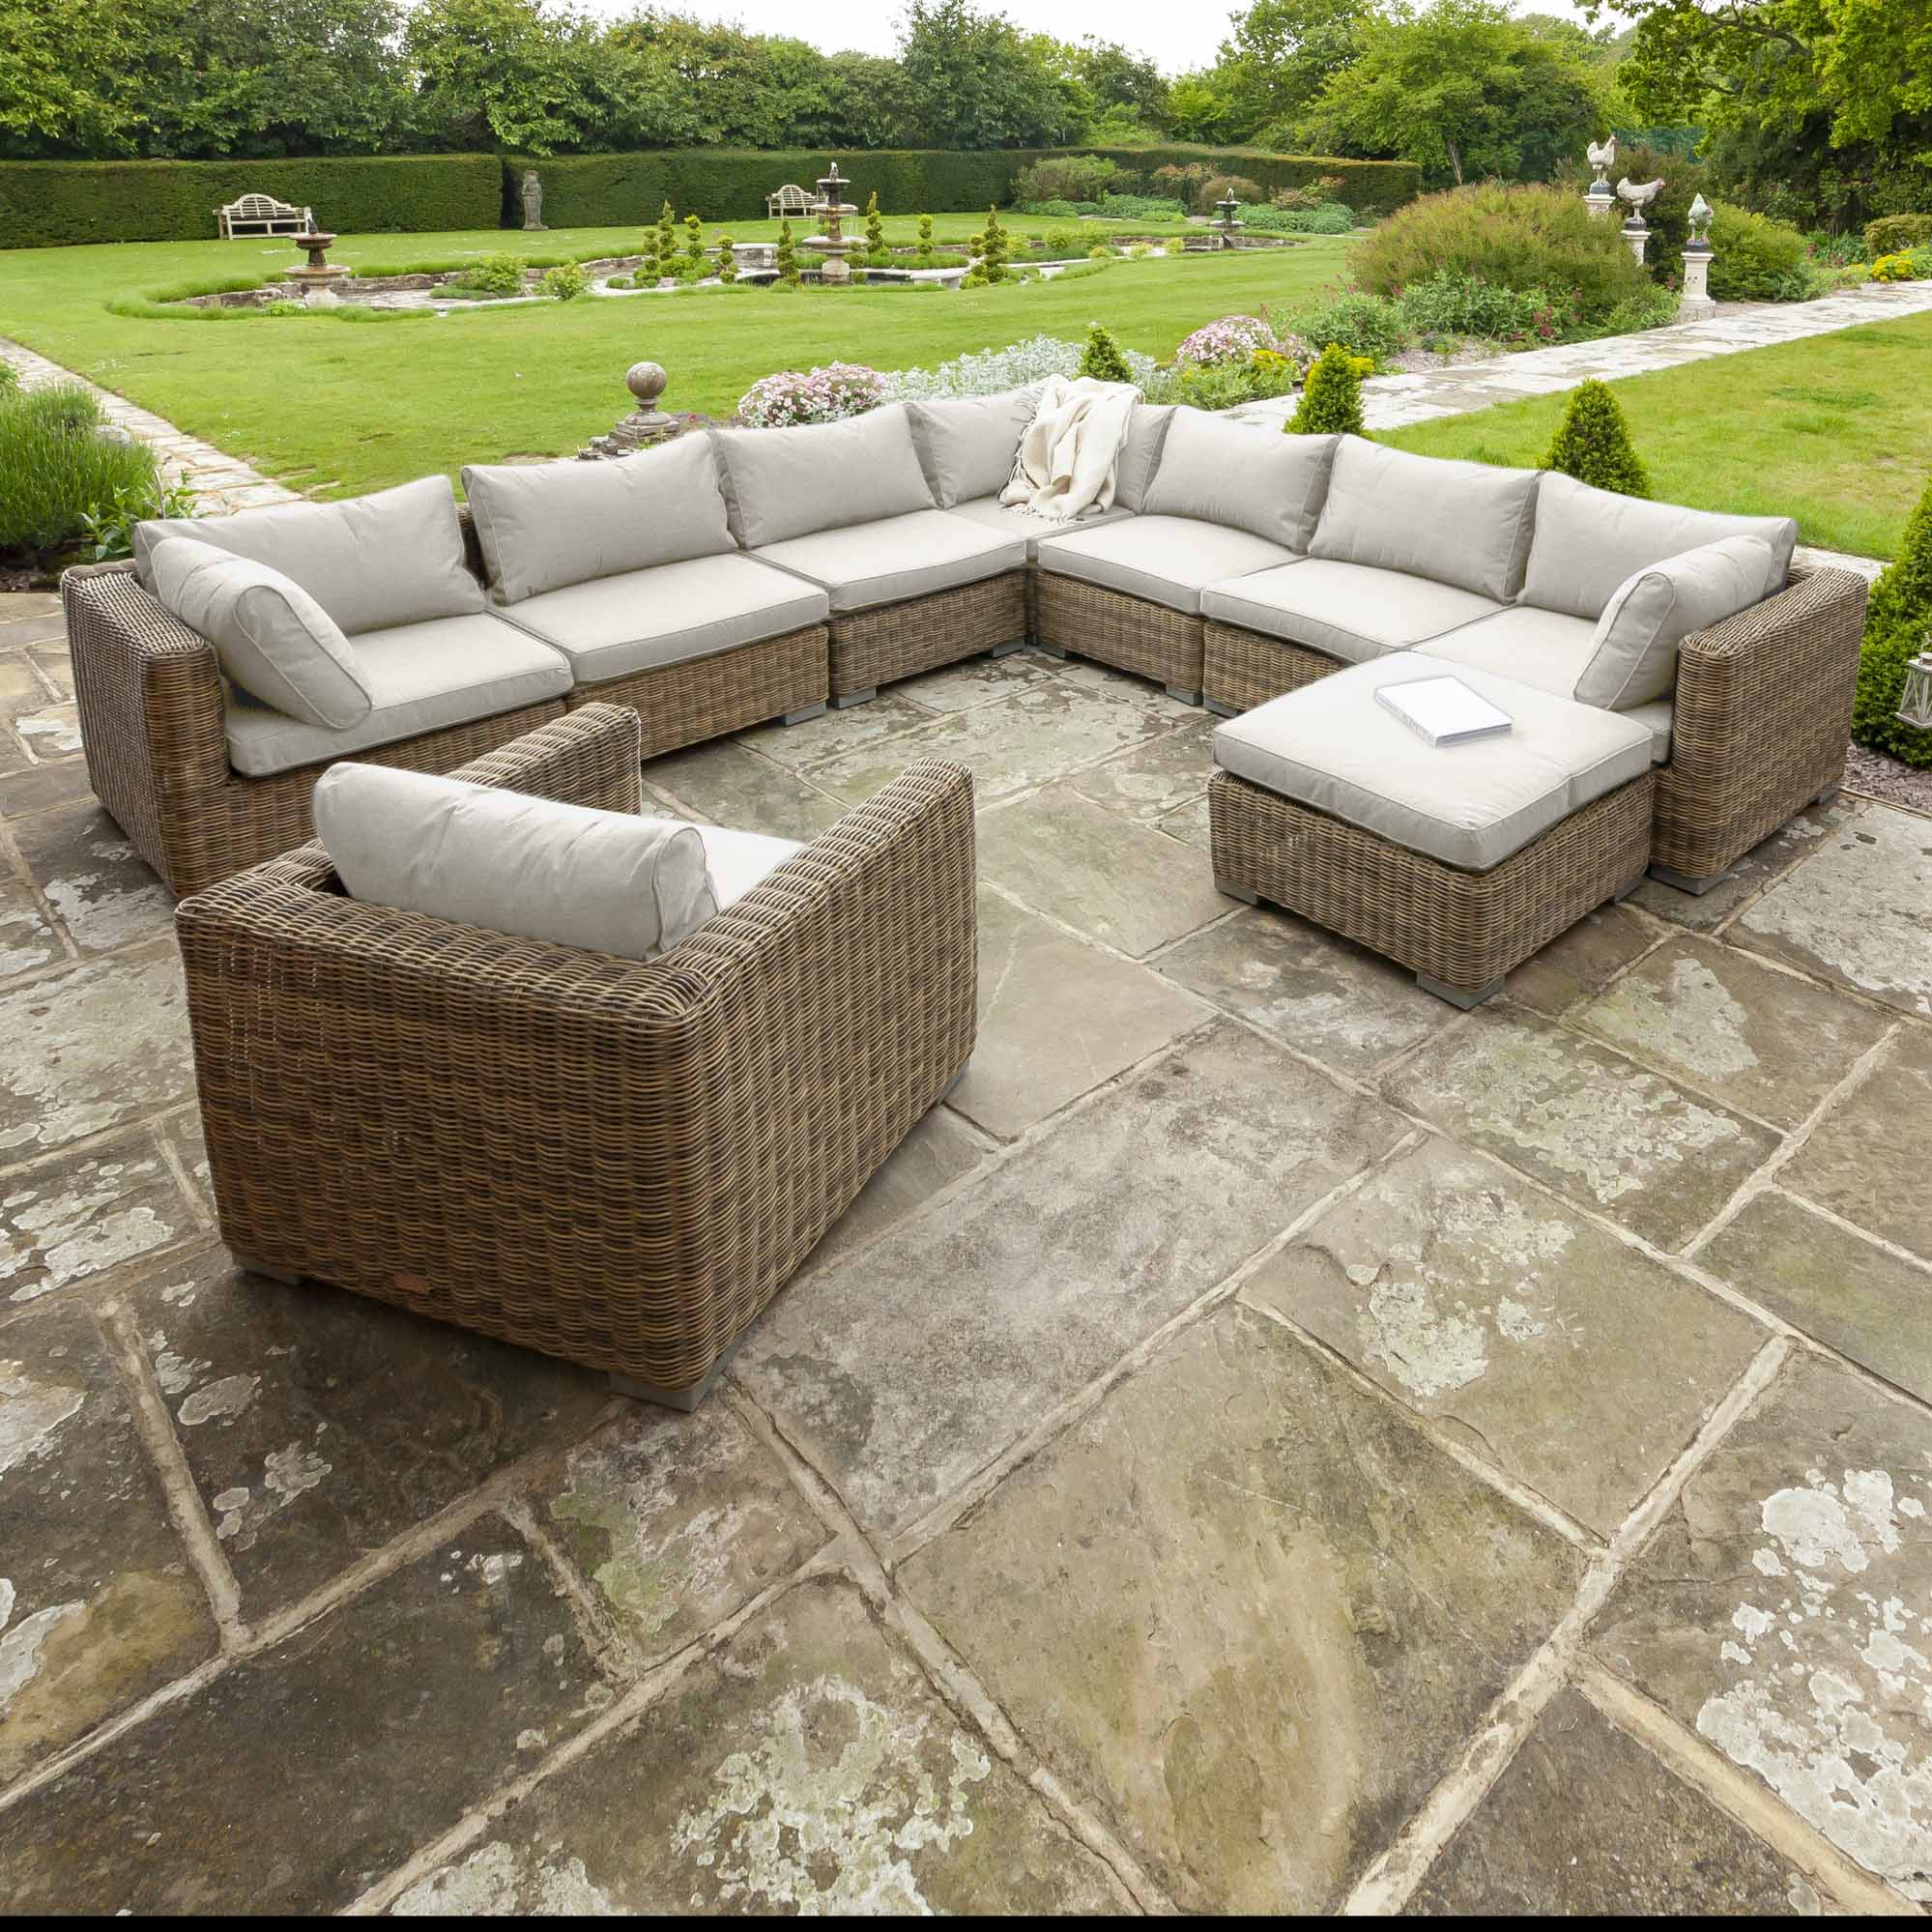 Livingstone 7 Seater Sofa Set With Armchair & Footstool